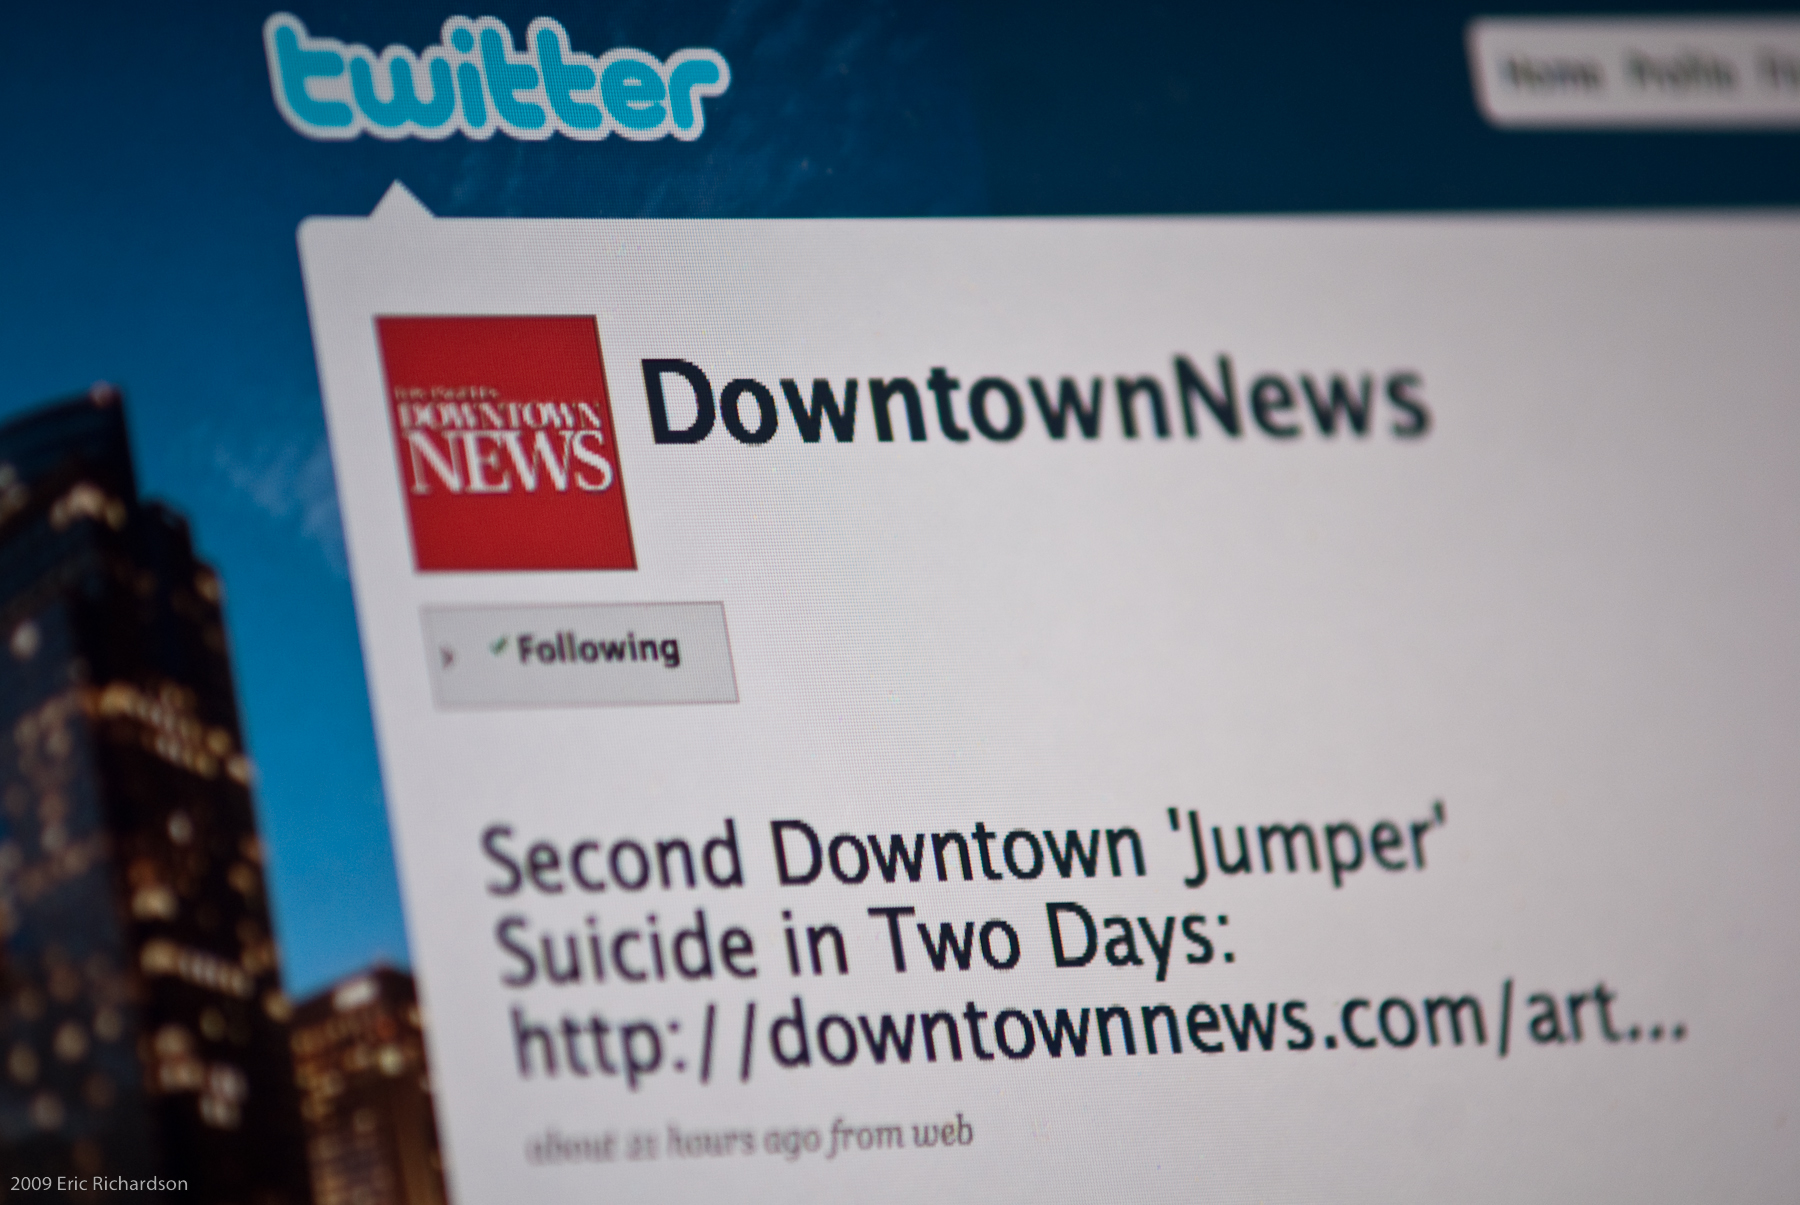 Twitter Censoring the News Is a Bad Move